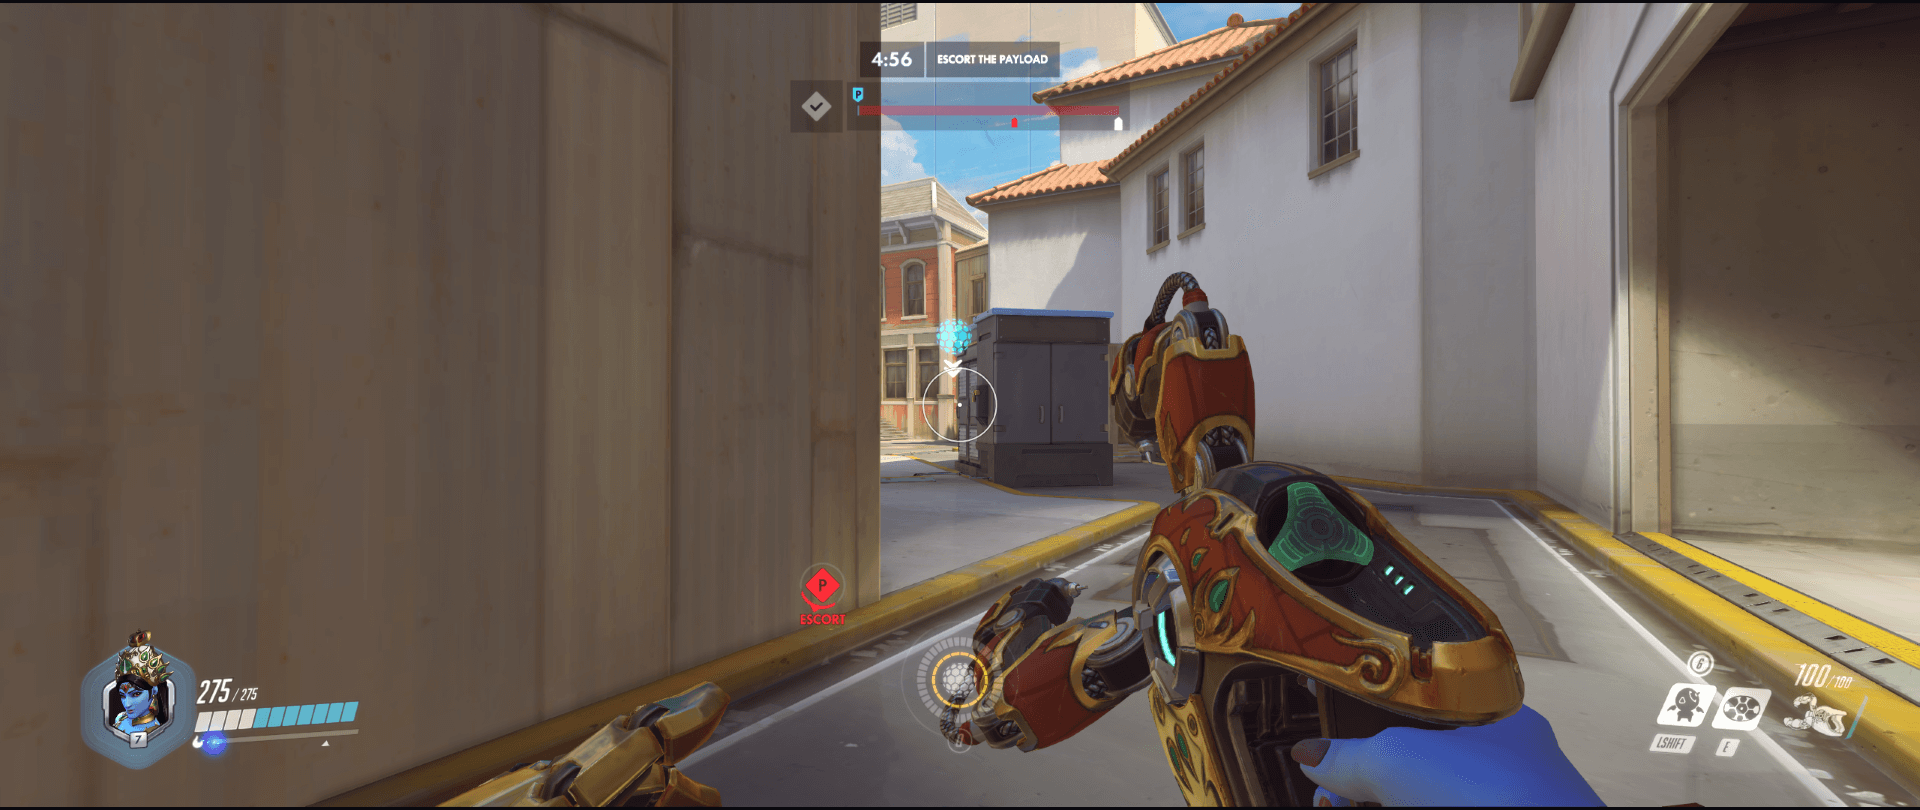 Symmetra shield generator spot Hollywood main range second point.png